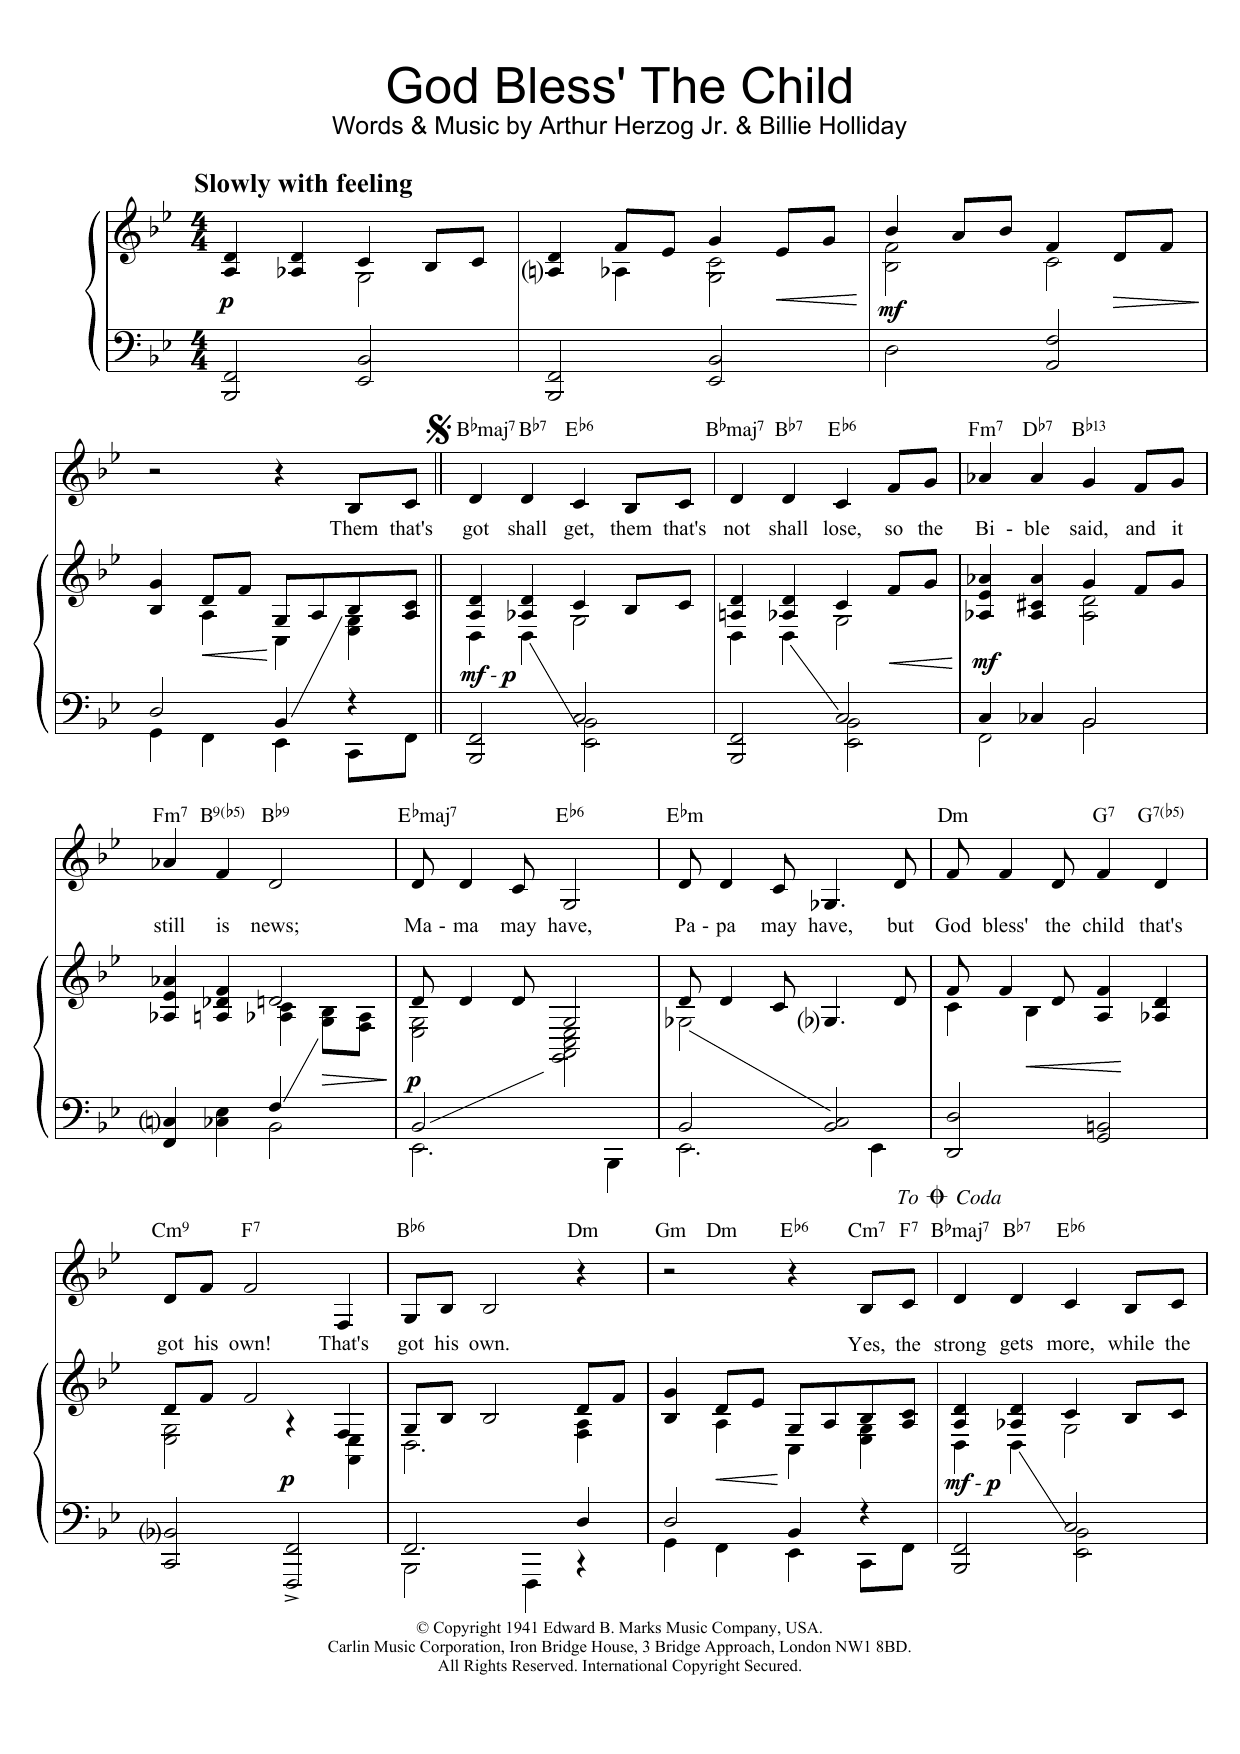 Sweet child o mine guitar chords image collections guitar chords will make this trial a blessing guitar chords learn worship guitar play worship guitar worship fatherlandz hexwebz Images